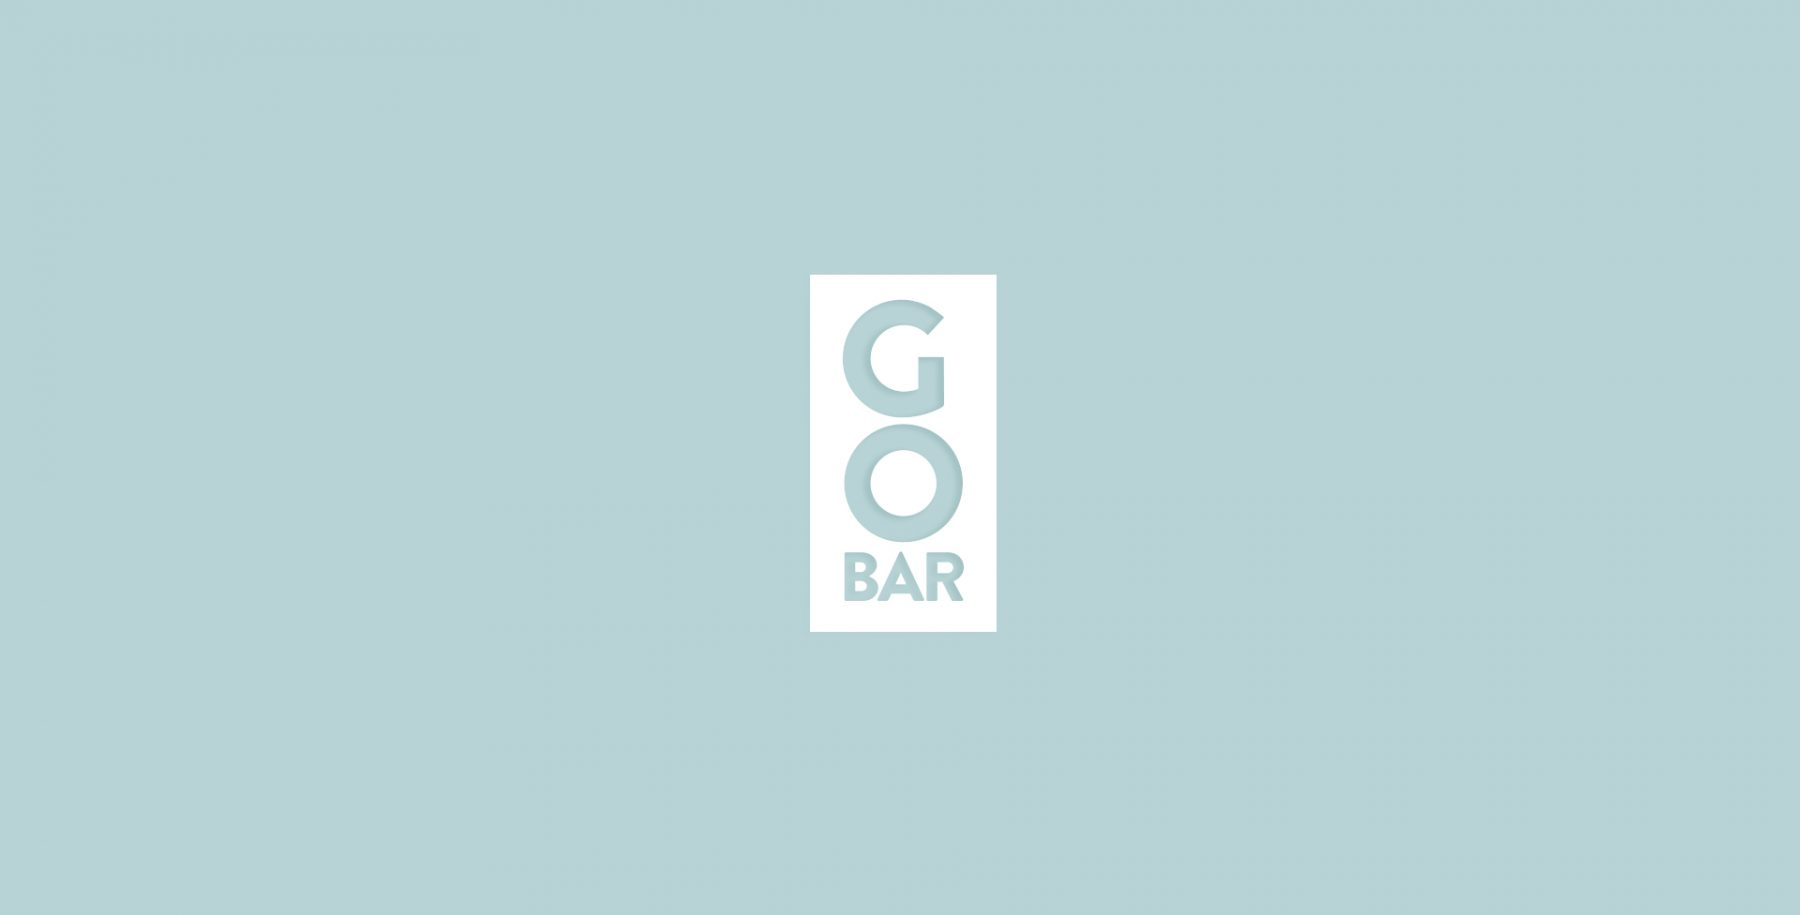 Go Bar logo design